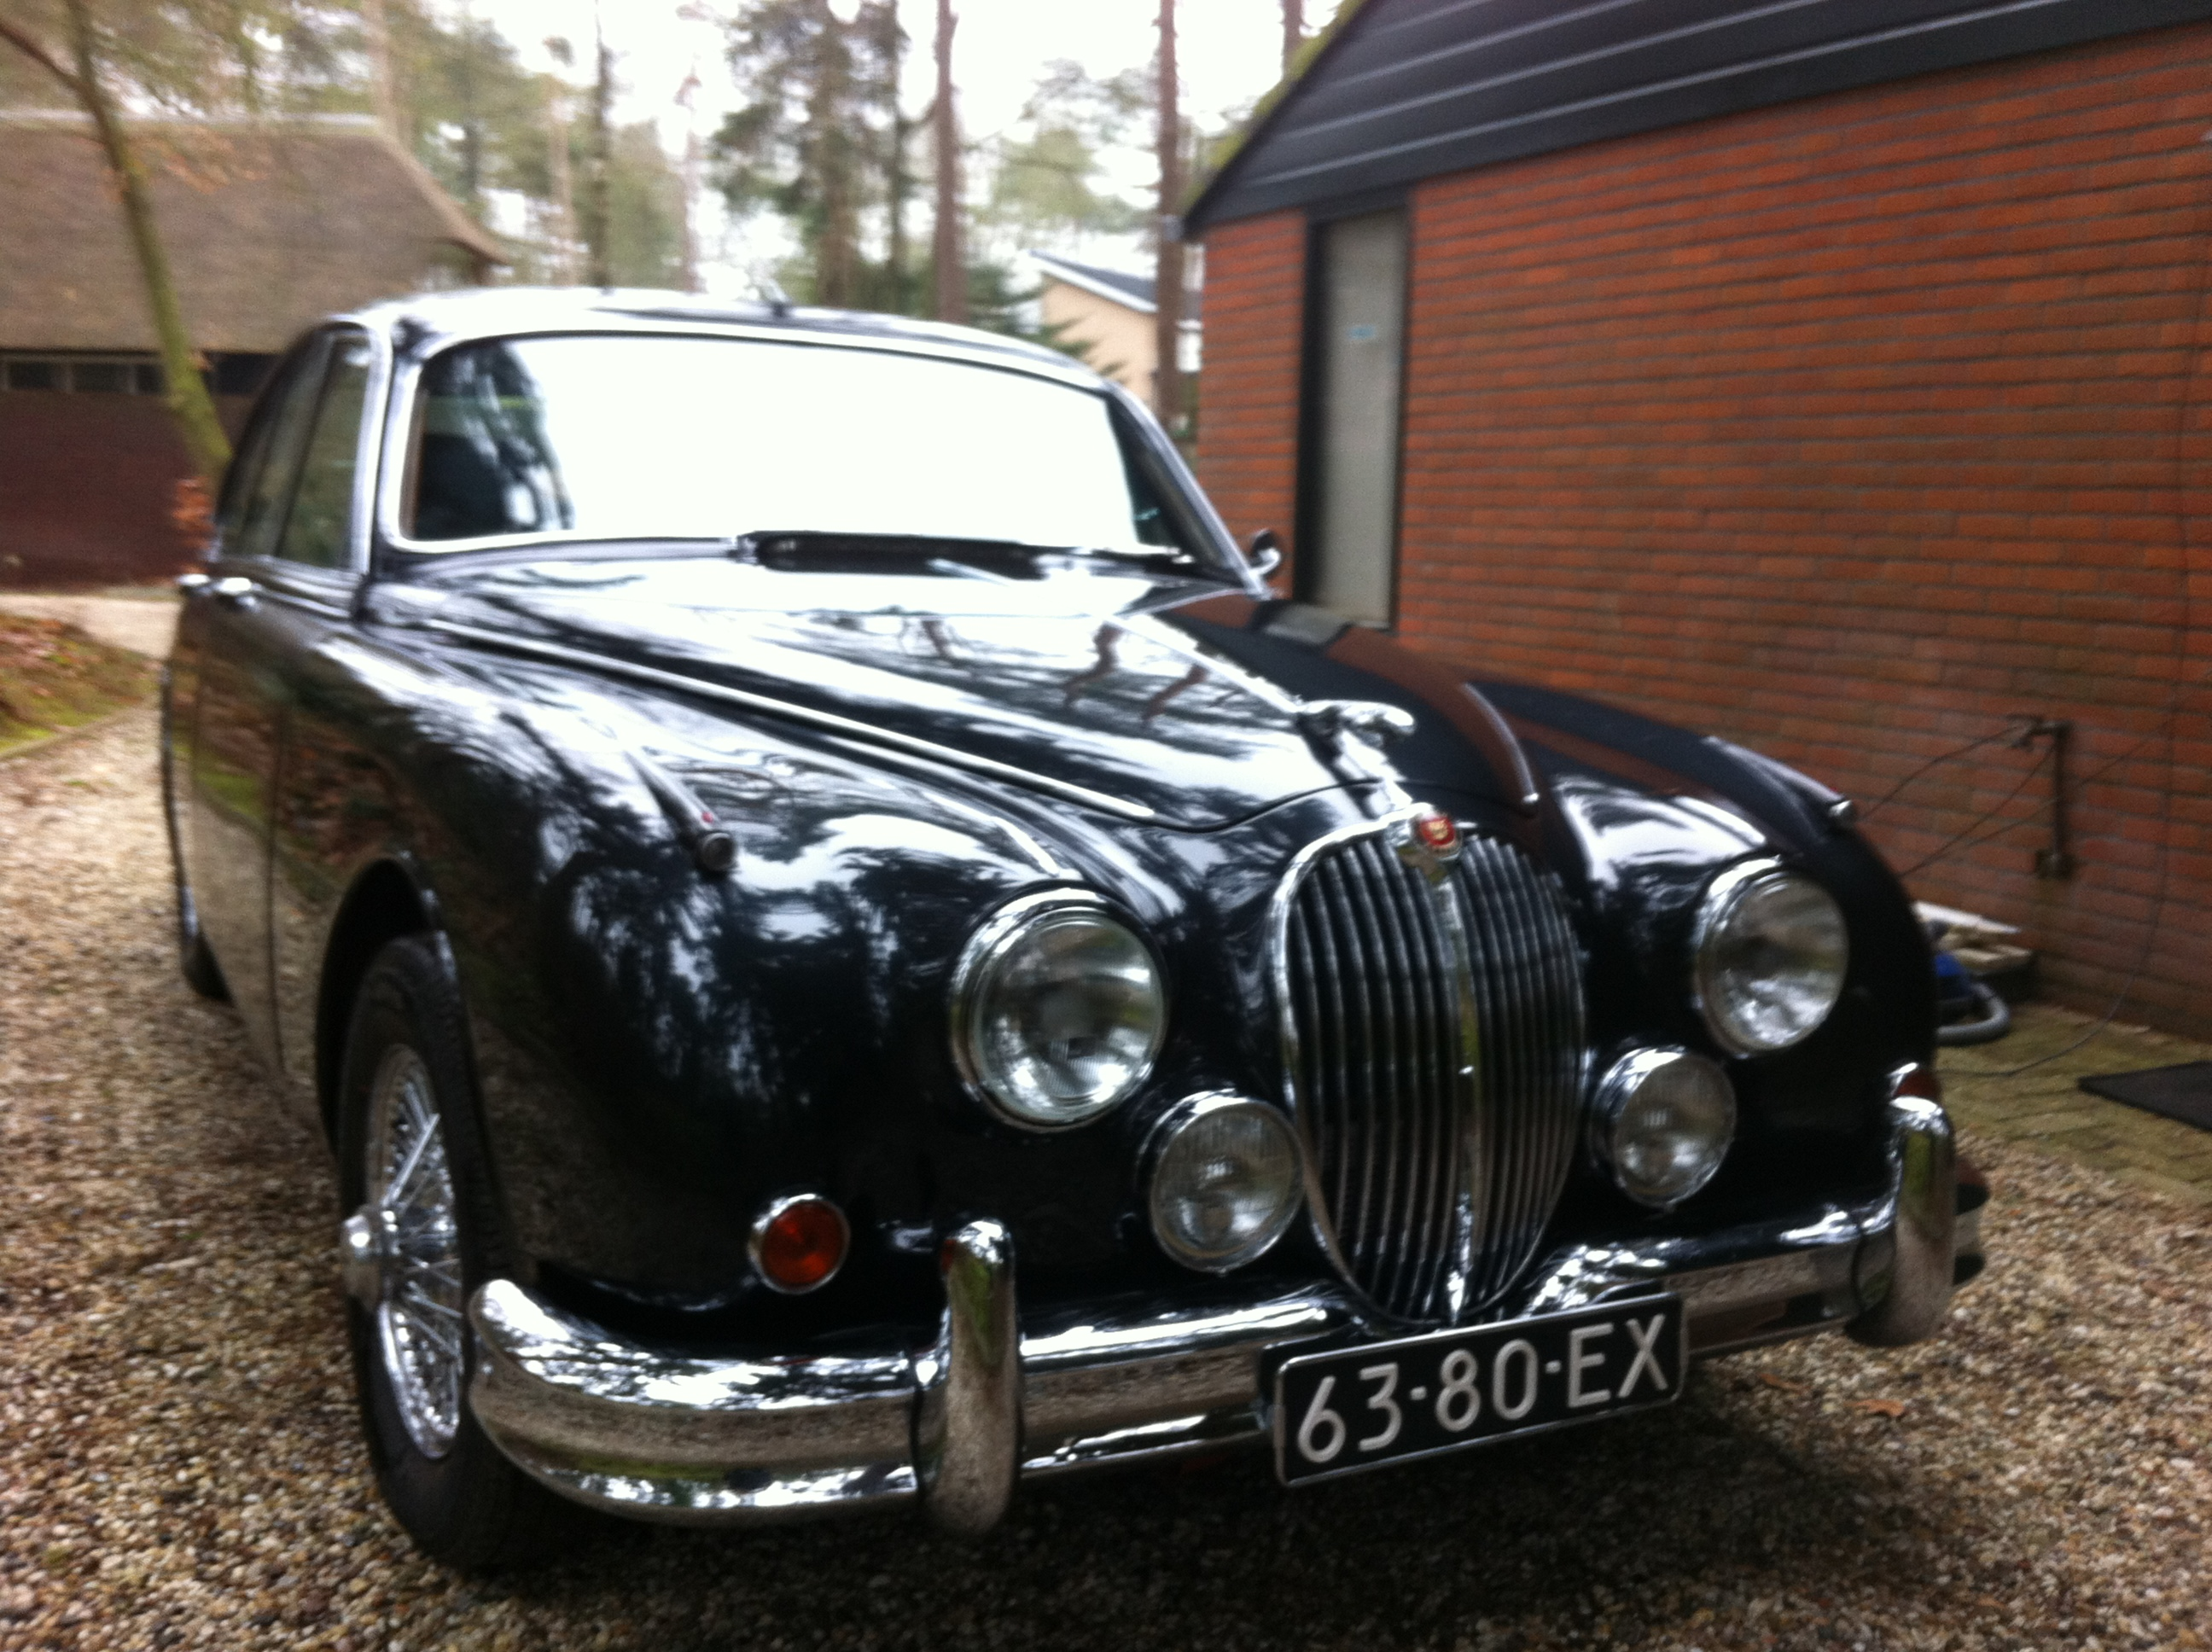 sale and mark ii type e i we are gullwing for classic dhc series buy convertible buying coupe ss cars d iii htm motor img c xk jaguar